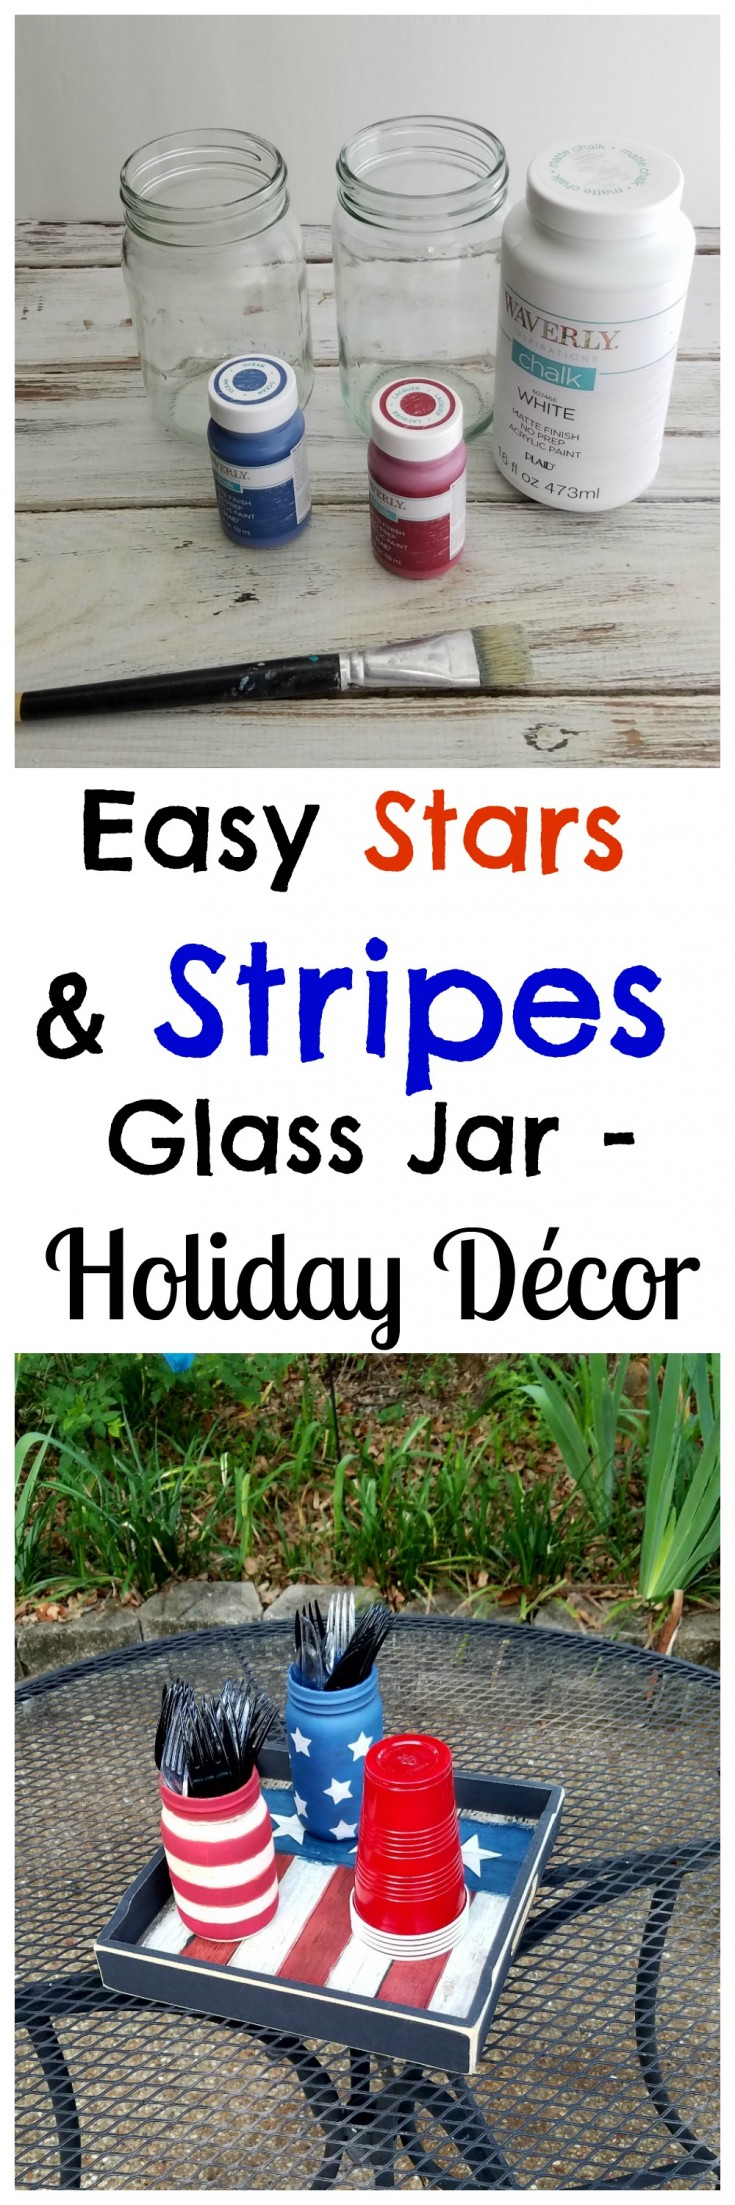 Easy Stars and Stripes Glass Jar – Holiday Décor